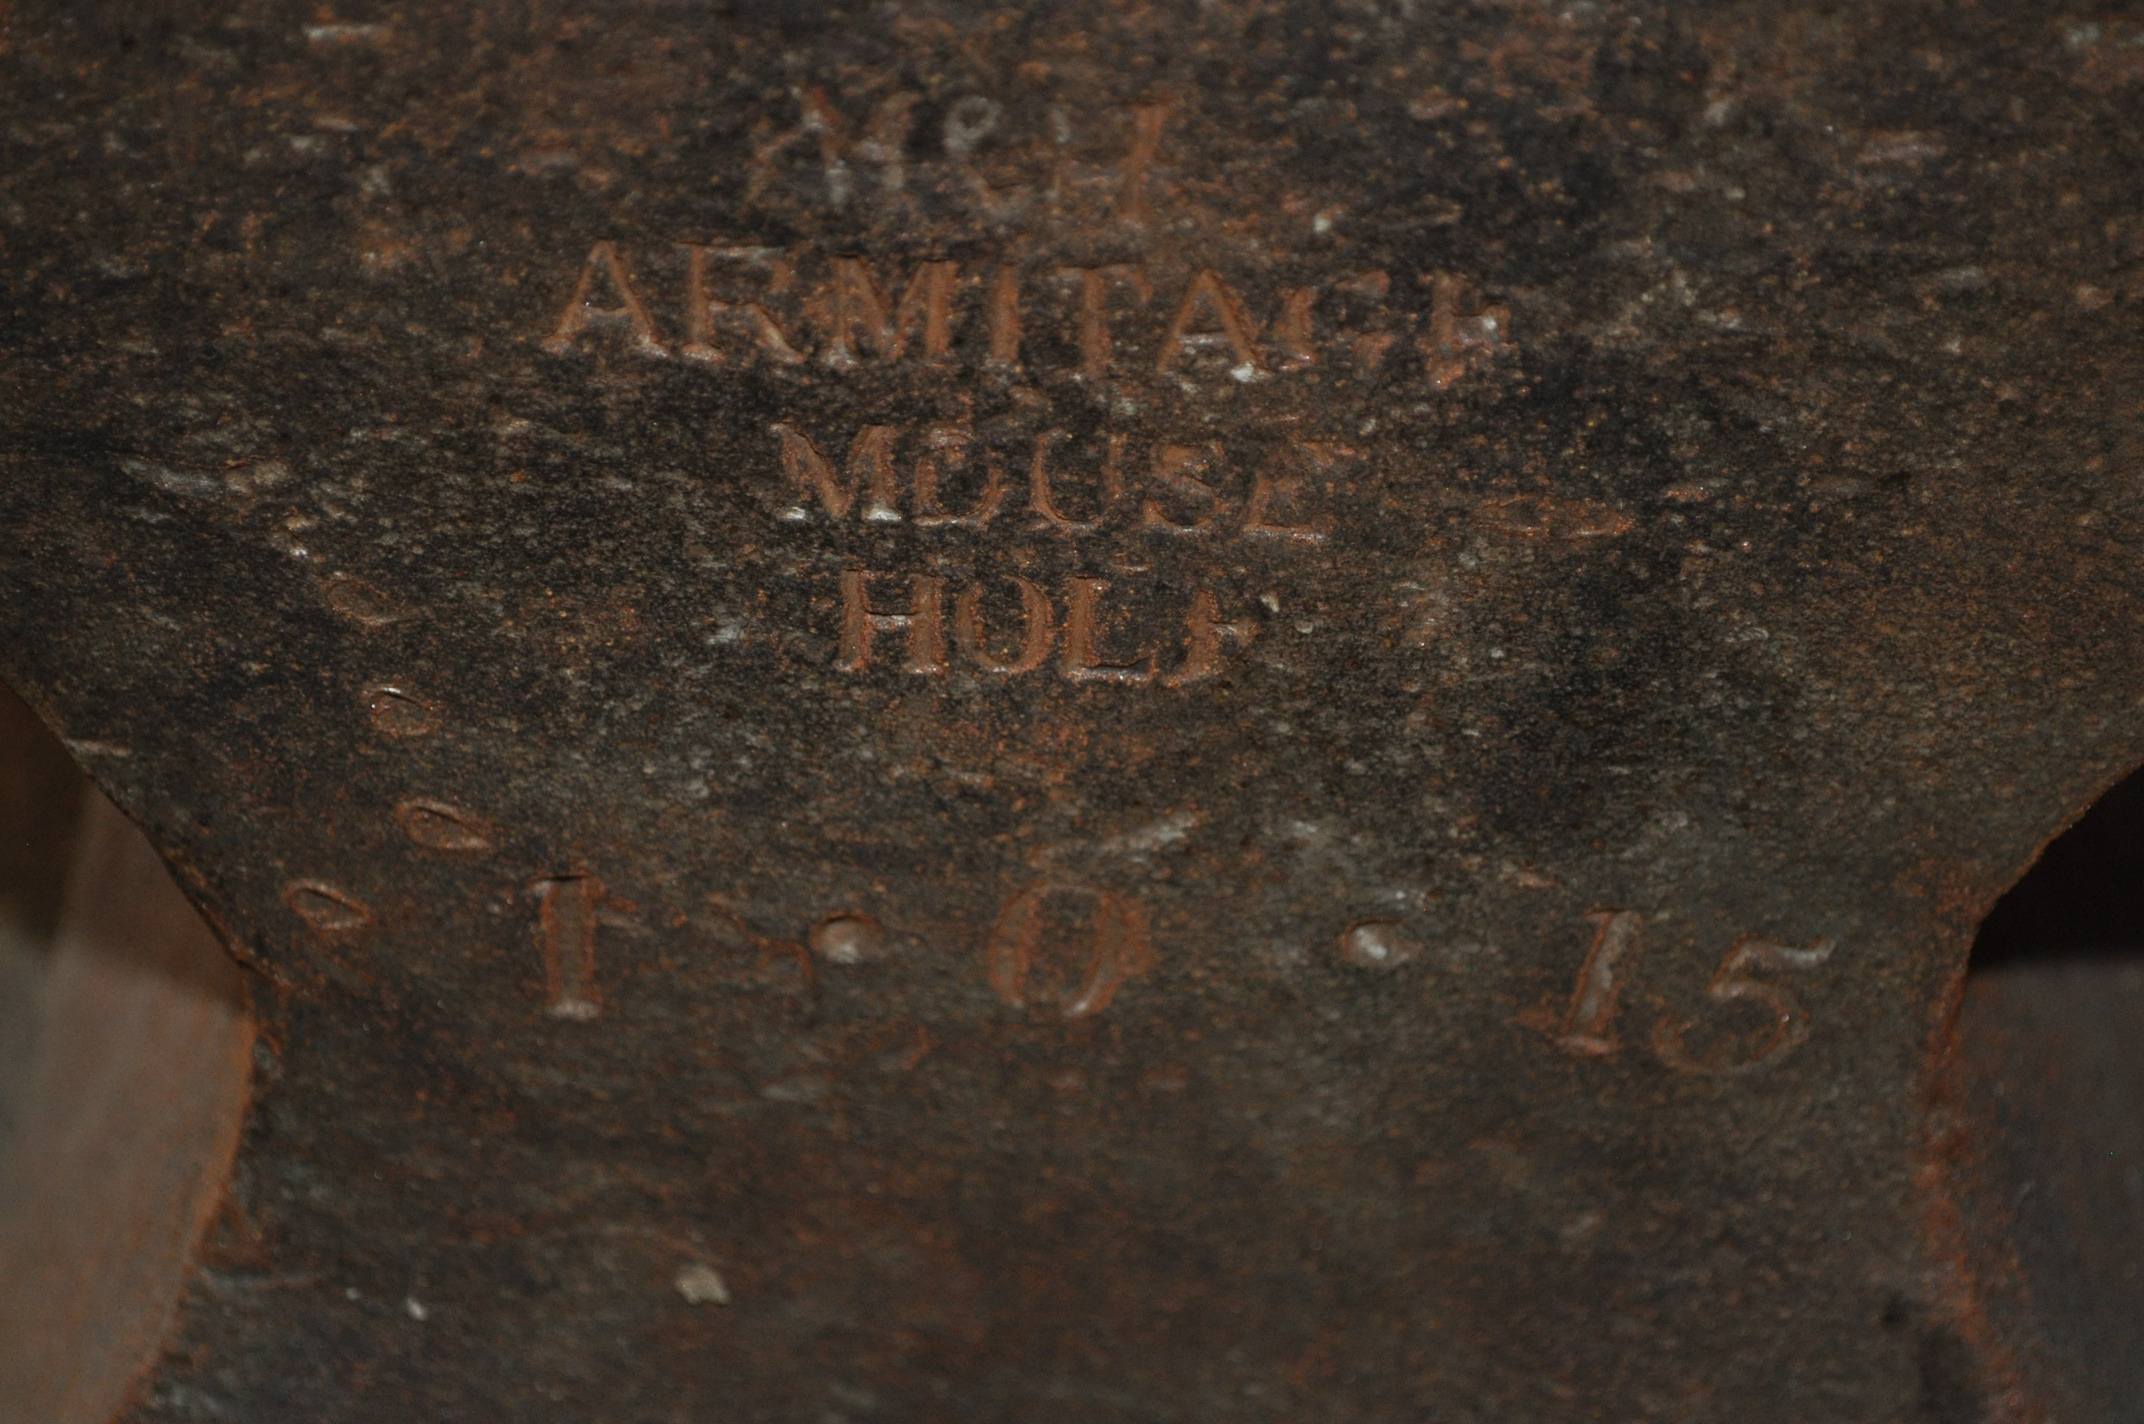 Armitage mouse hole 1•0•15 anvil - Image 2 of 3